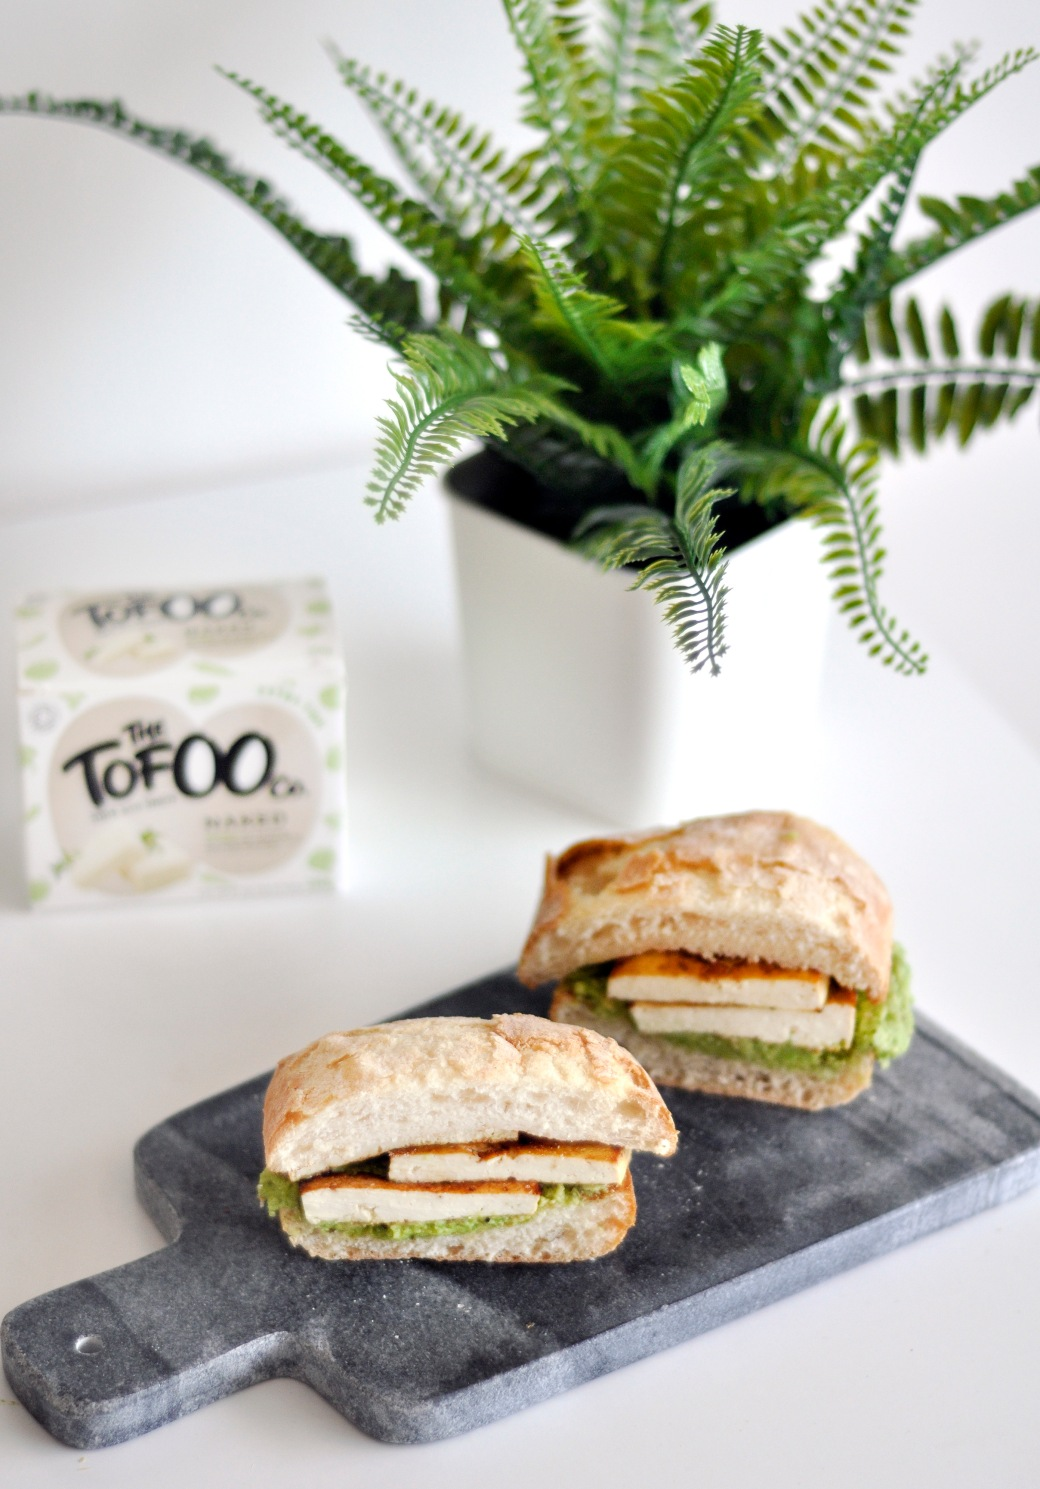 Vegan Tofu Avocado Sandwich